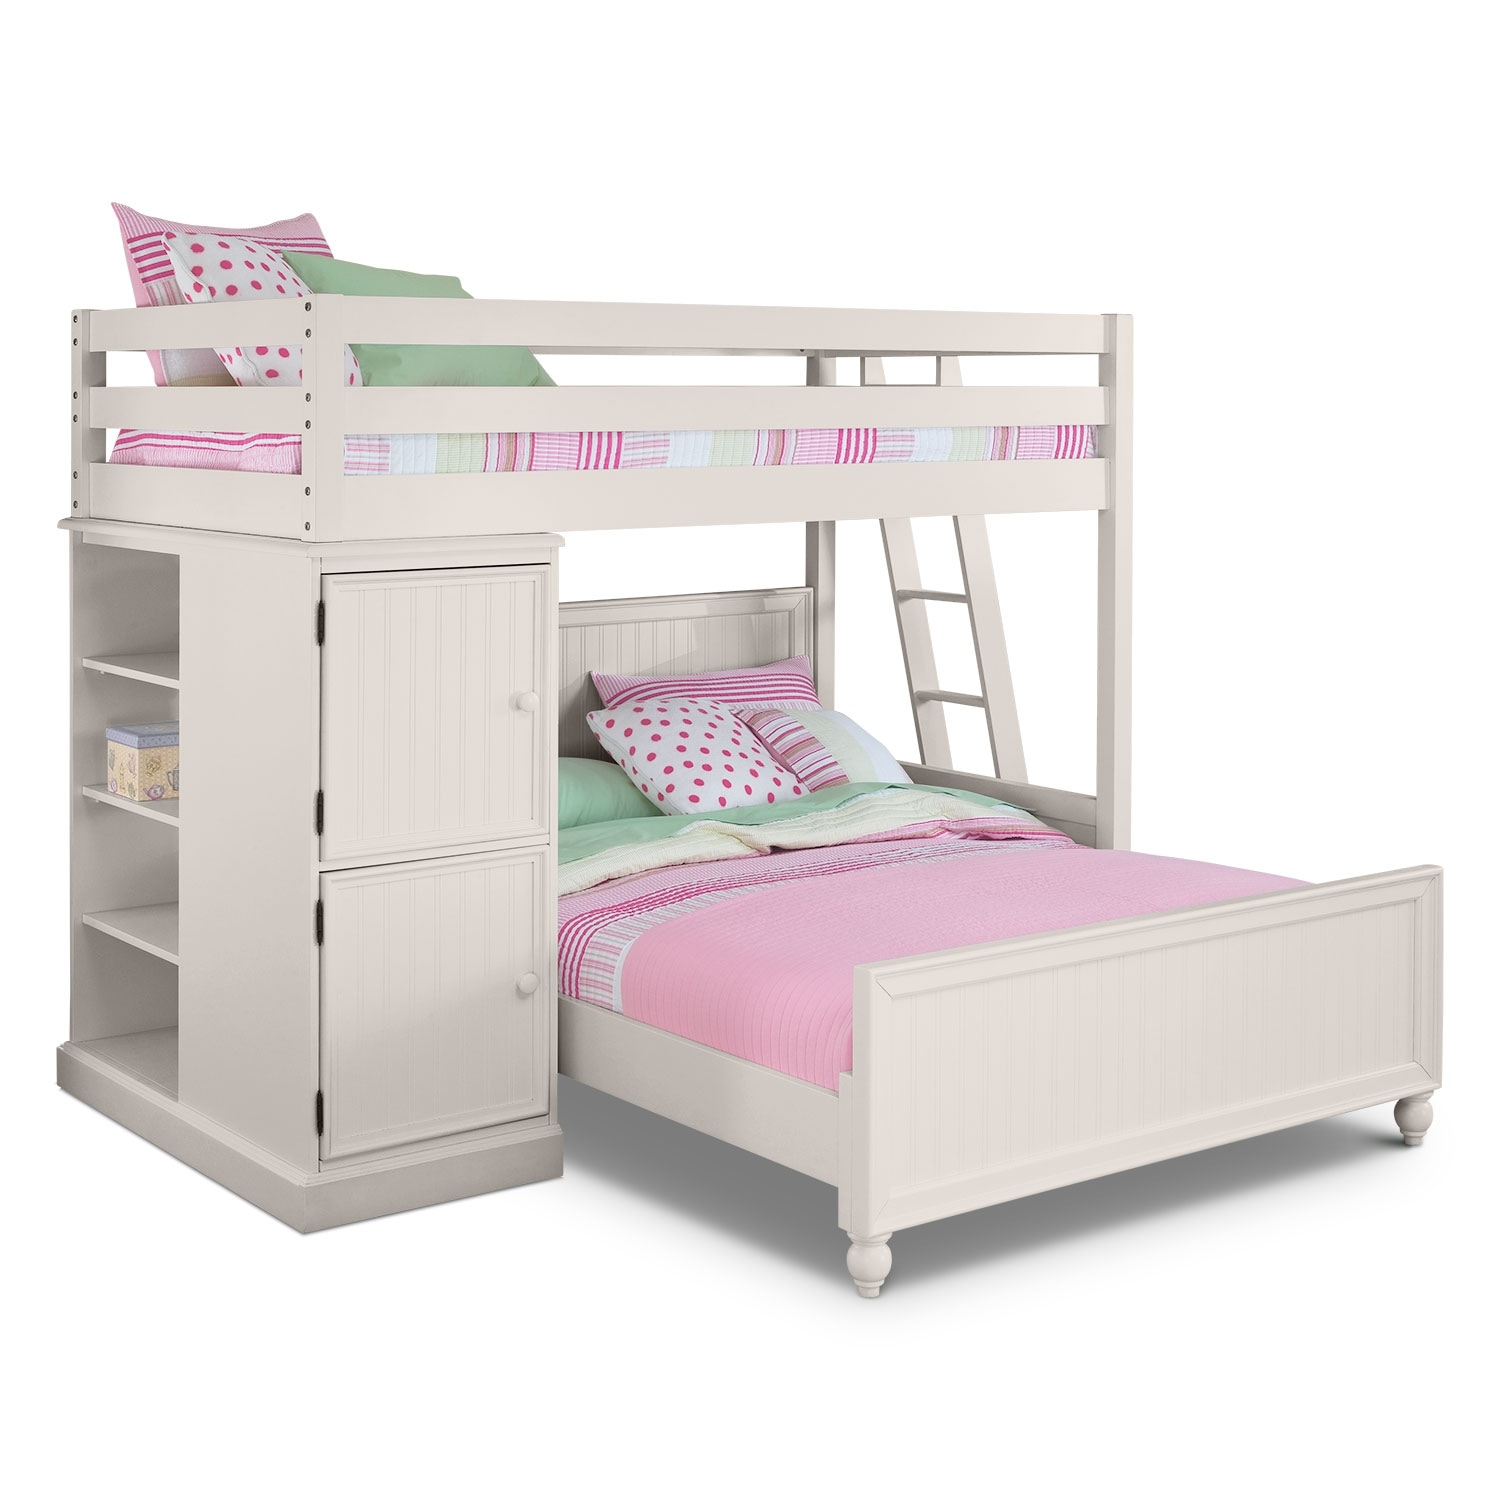 [Colorworks White II Loft Bed with Full Bed]